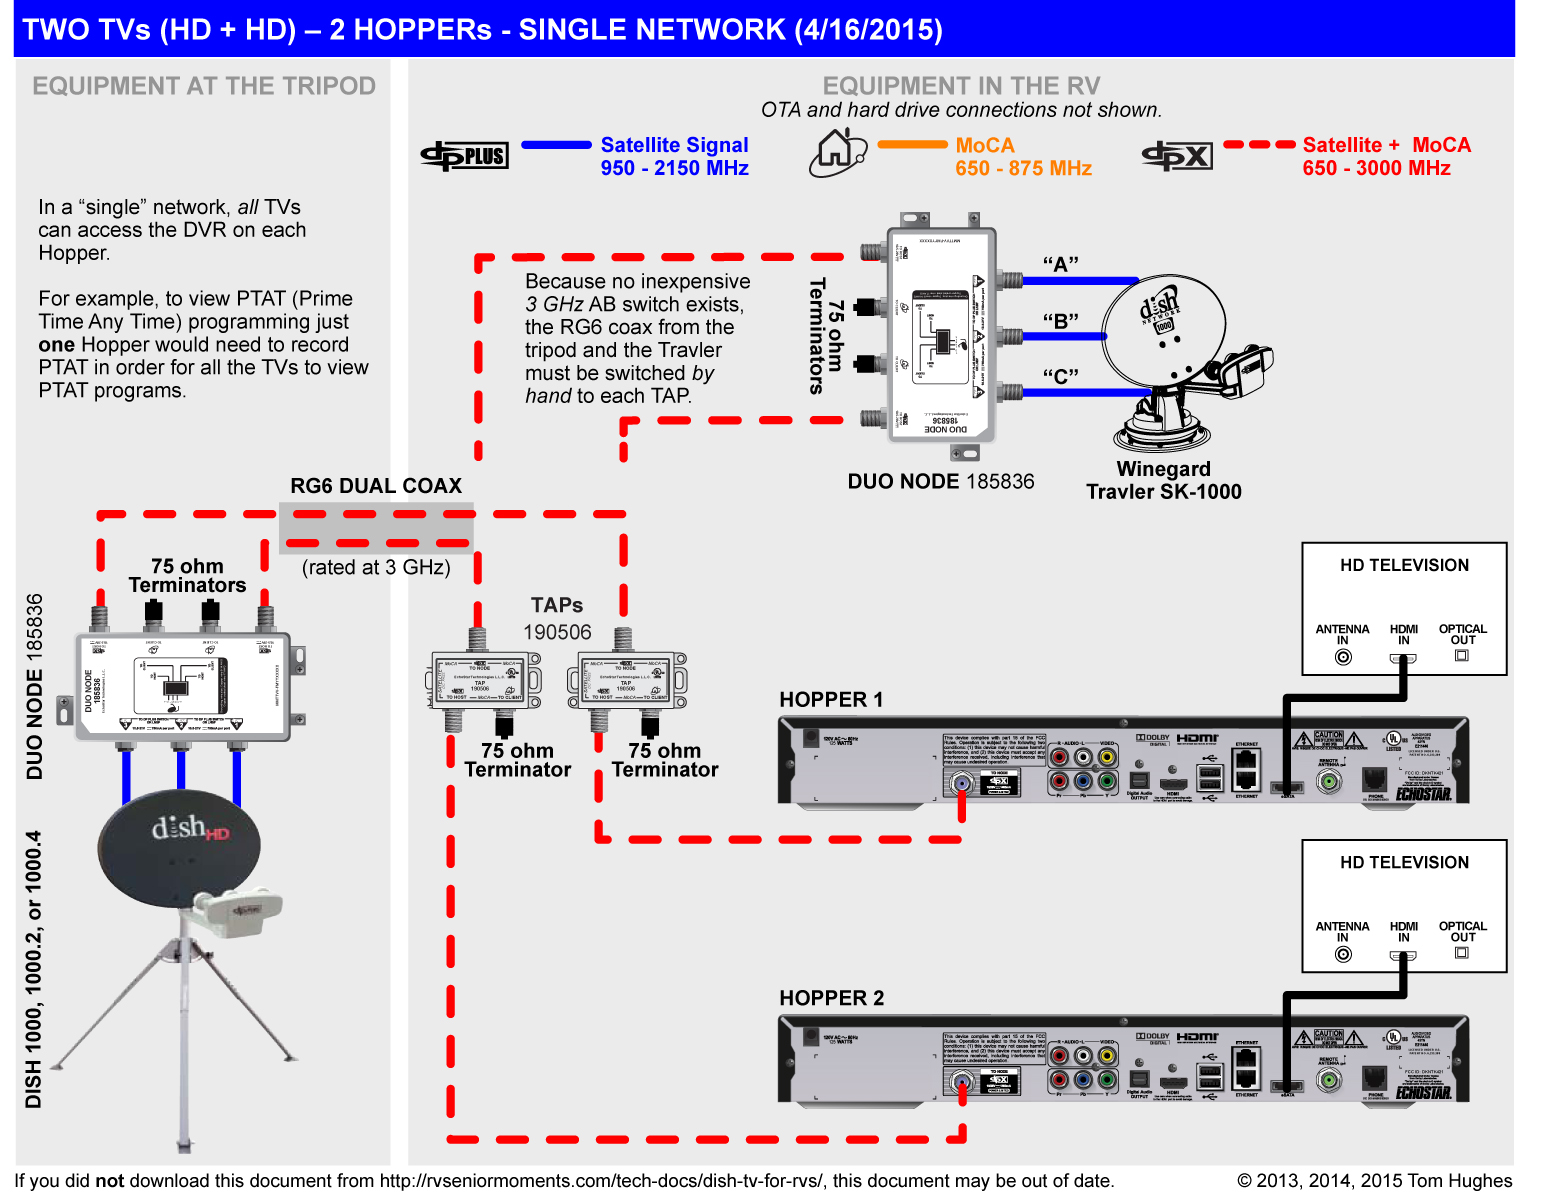 directv swm dish wiring diagram images directv hopper wiring awesome dish network wiring diagram detail nilzanet